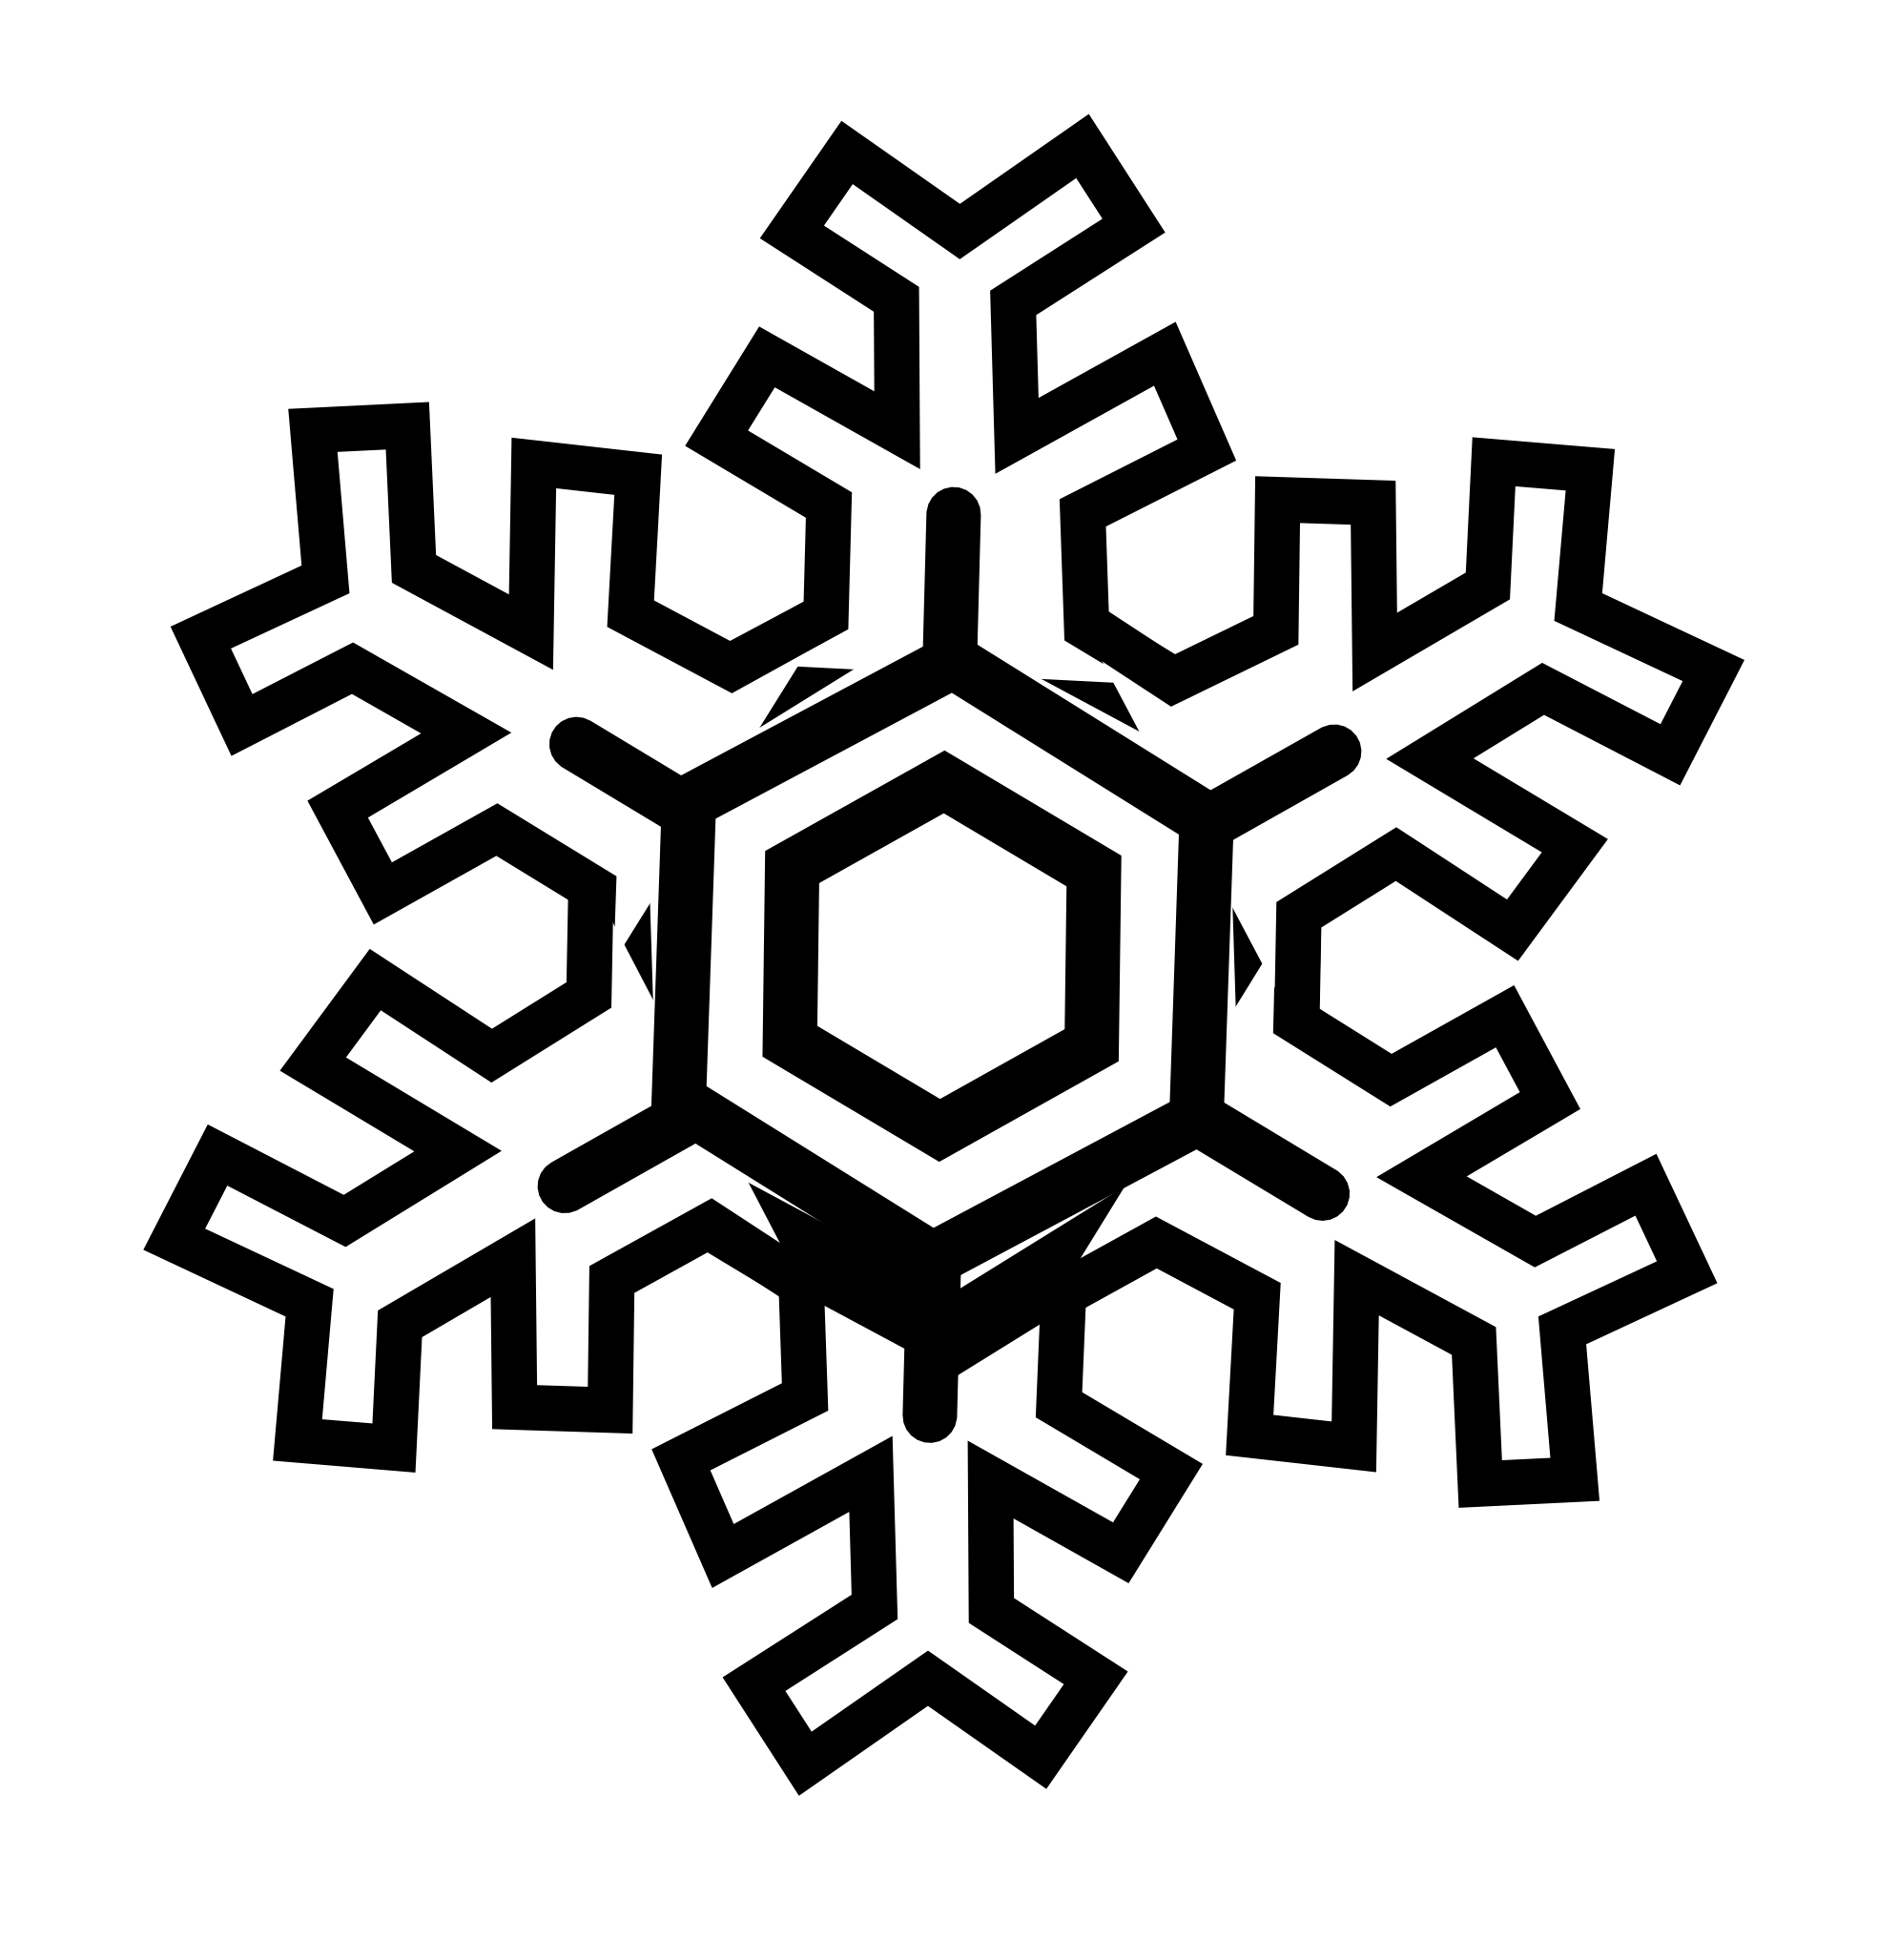 Snowflake clipart solid white png black and white stock Free Nightmare Before Christmas Clipart, Download Free Clip Art ... png black and white stock